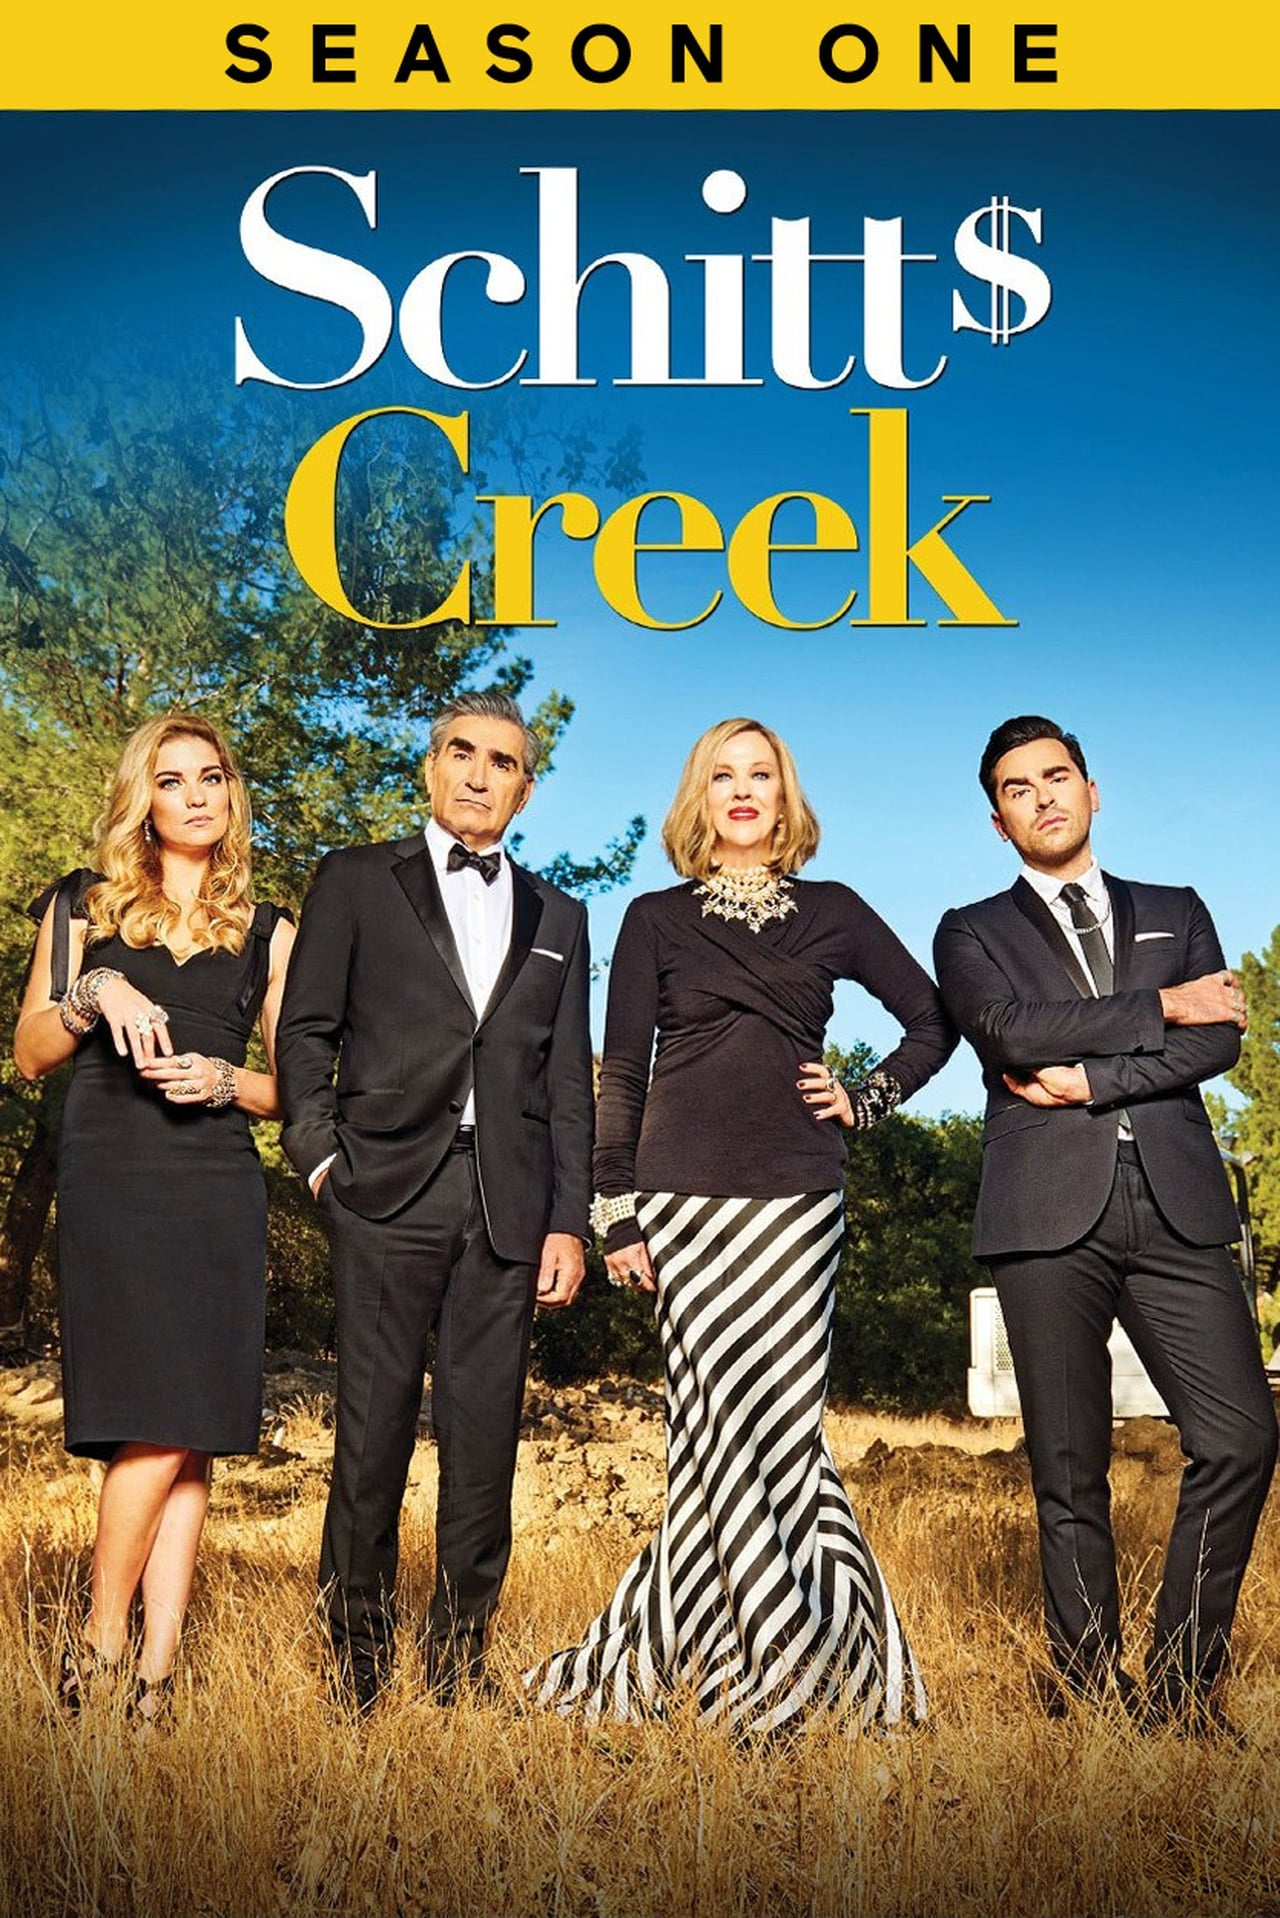 Watch Schitt's Creek Season 1 Online